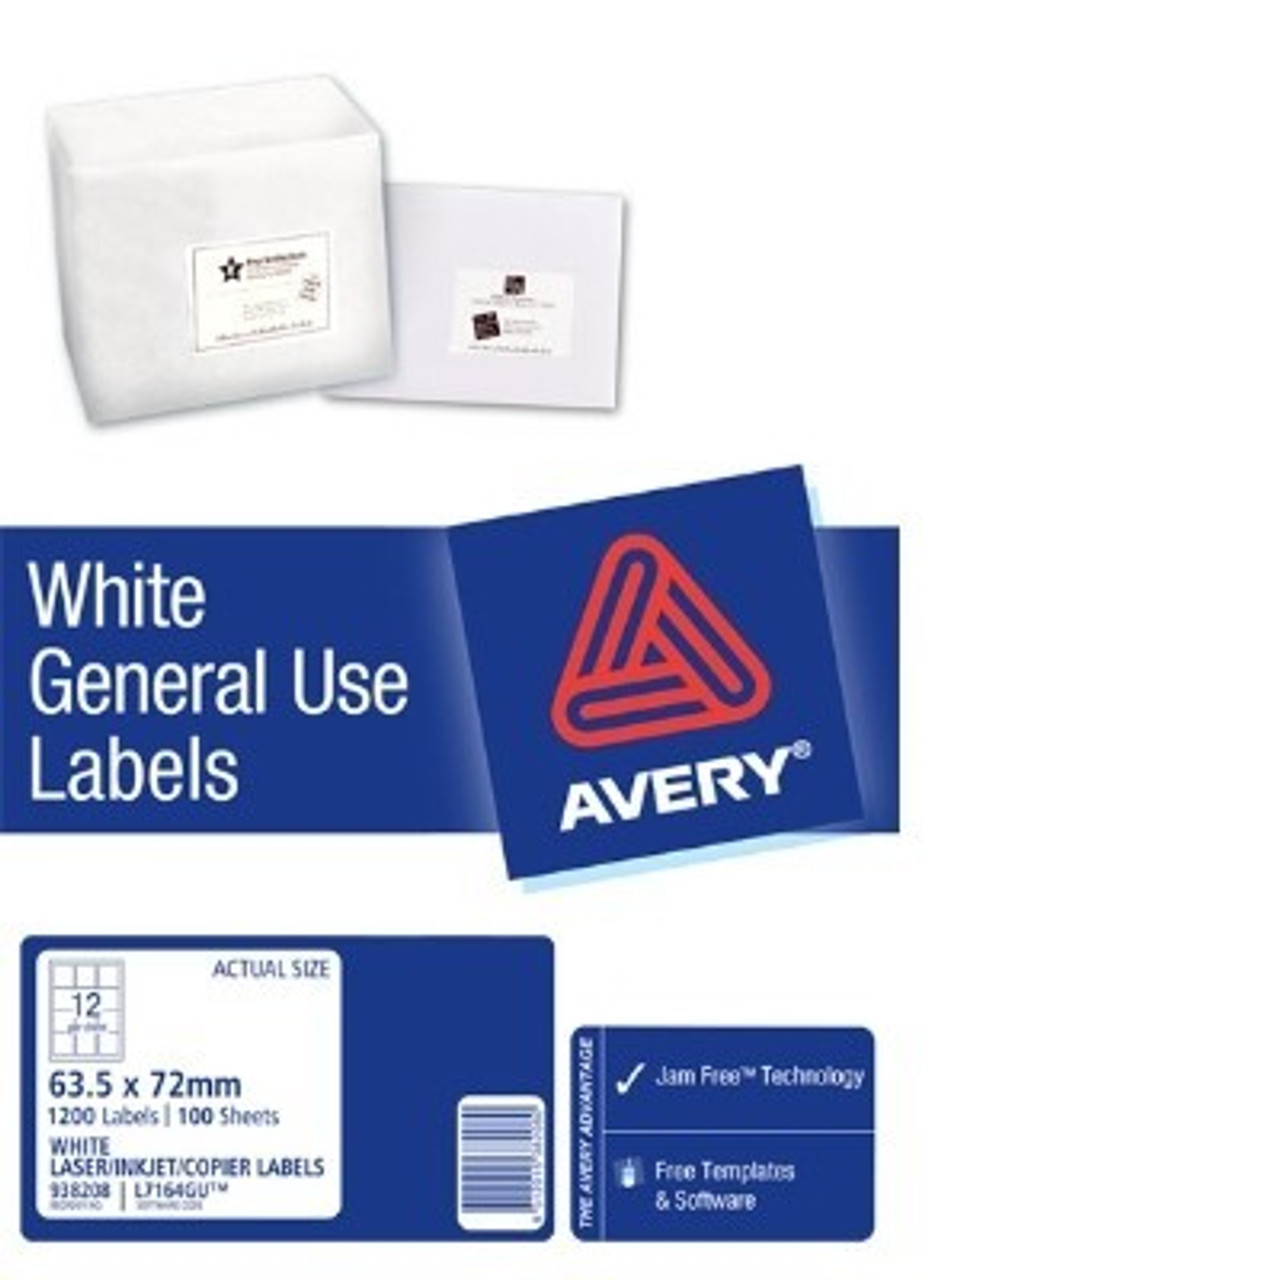 AVERY GENERAL USE LABELS L7164 12 LABELS/SHEET